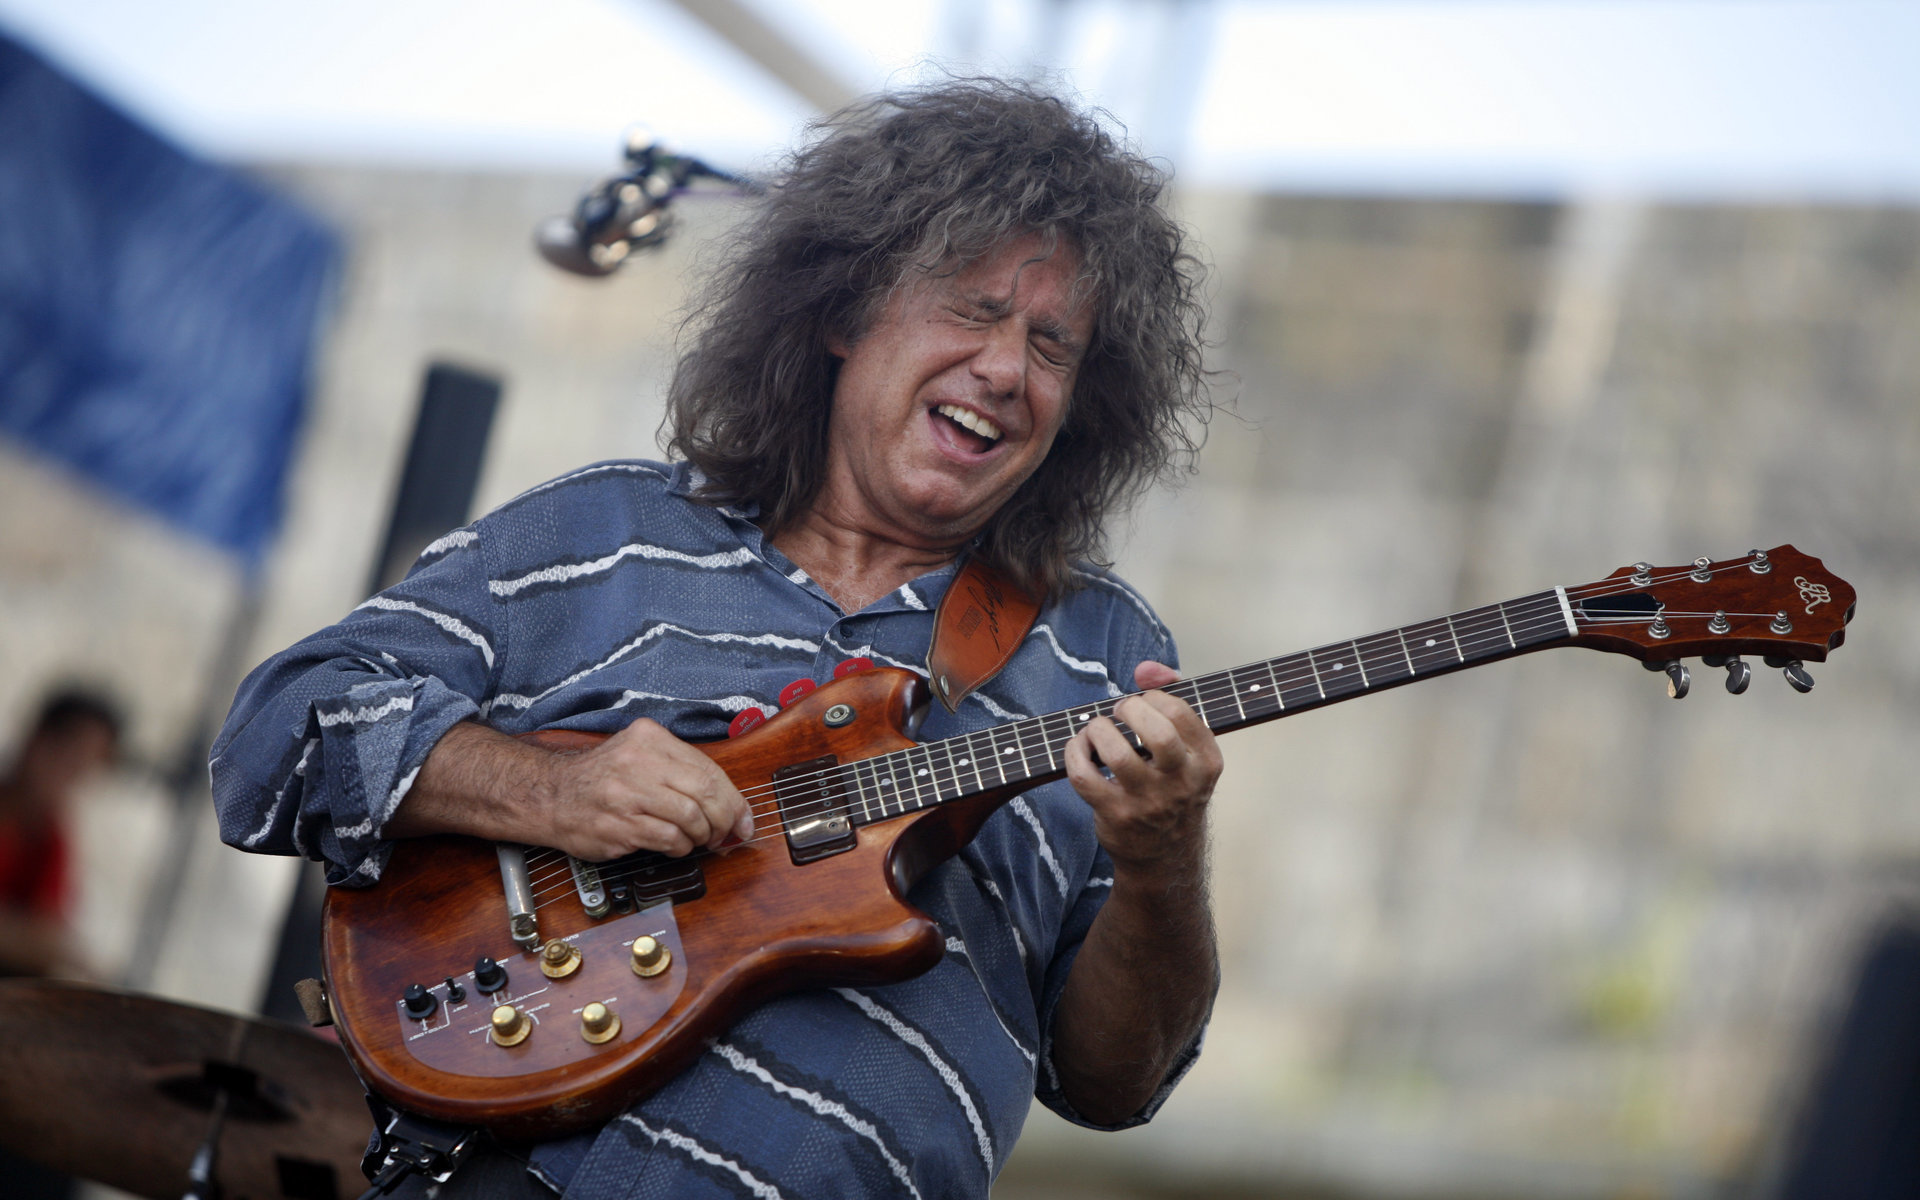 Pat Metheny ad Assisi per i terremotati: grande evento